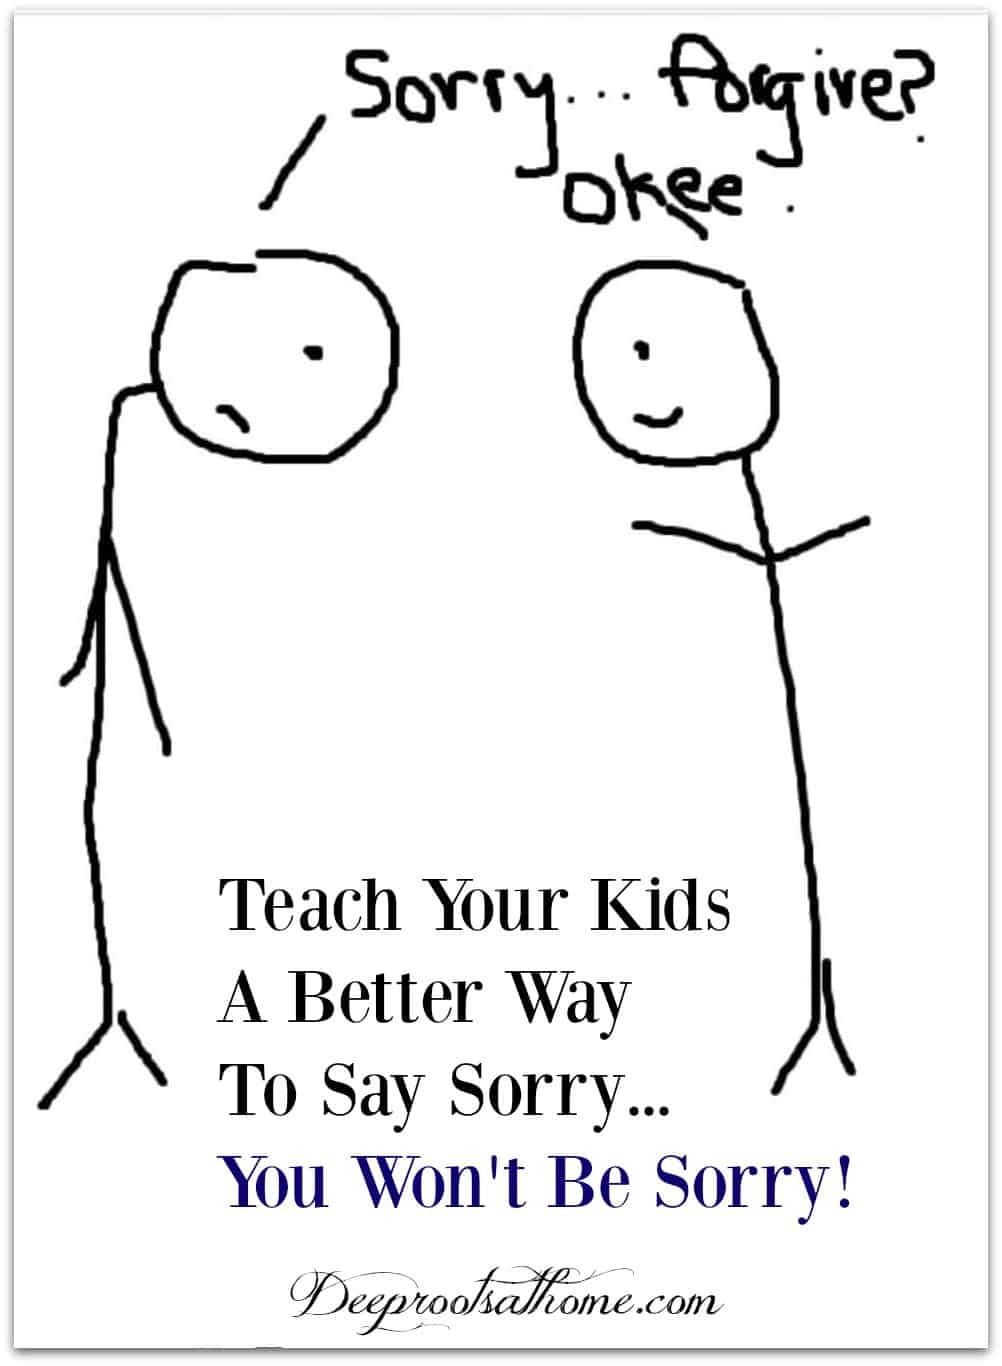 Teach Your Kids A Better Way to Say Sorry...You Won't Be Sorry!, drawing of stick men asking forgiveness or saying sorry